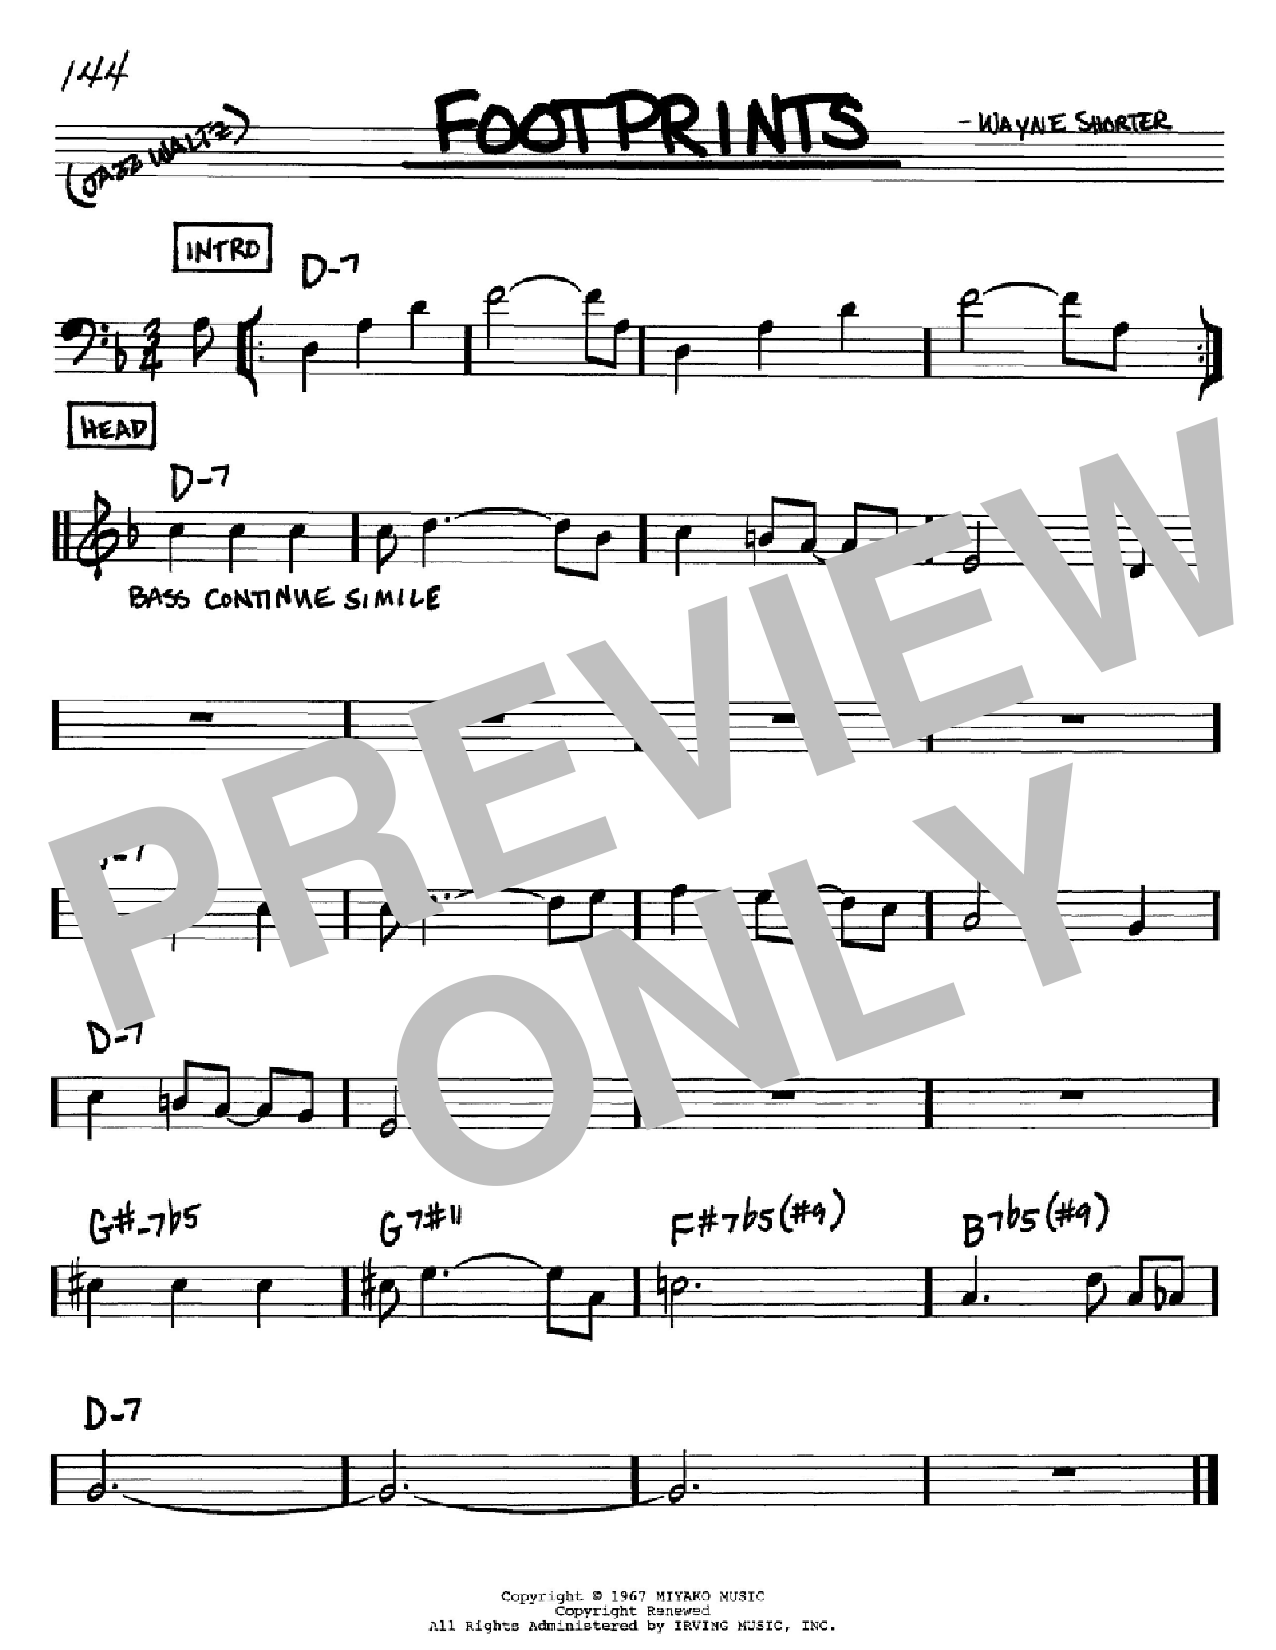 Footprints Sheet Music